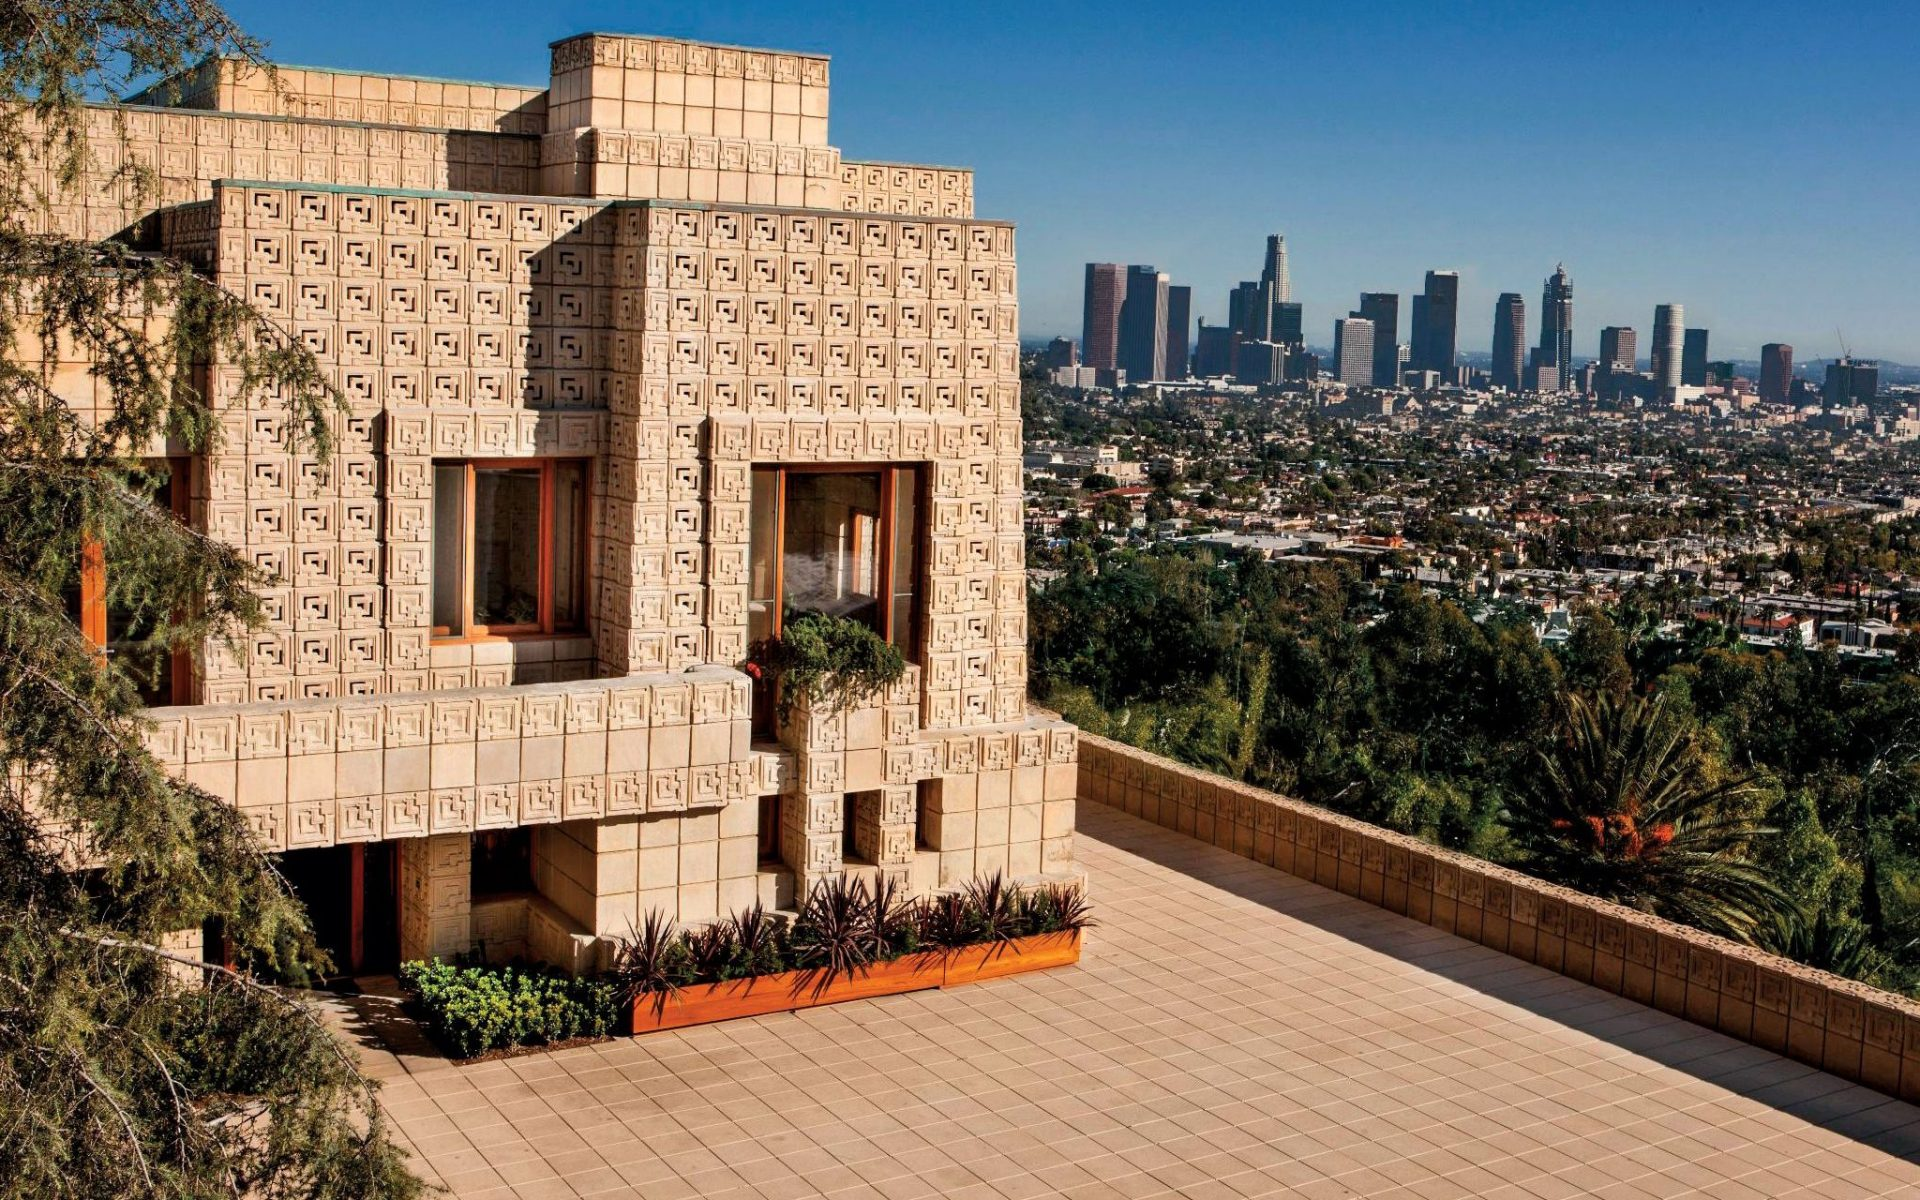 Frank lloyd wright s mayan revival home hits the market - Frank lloyd wright architecture style ...